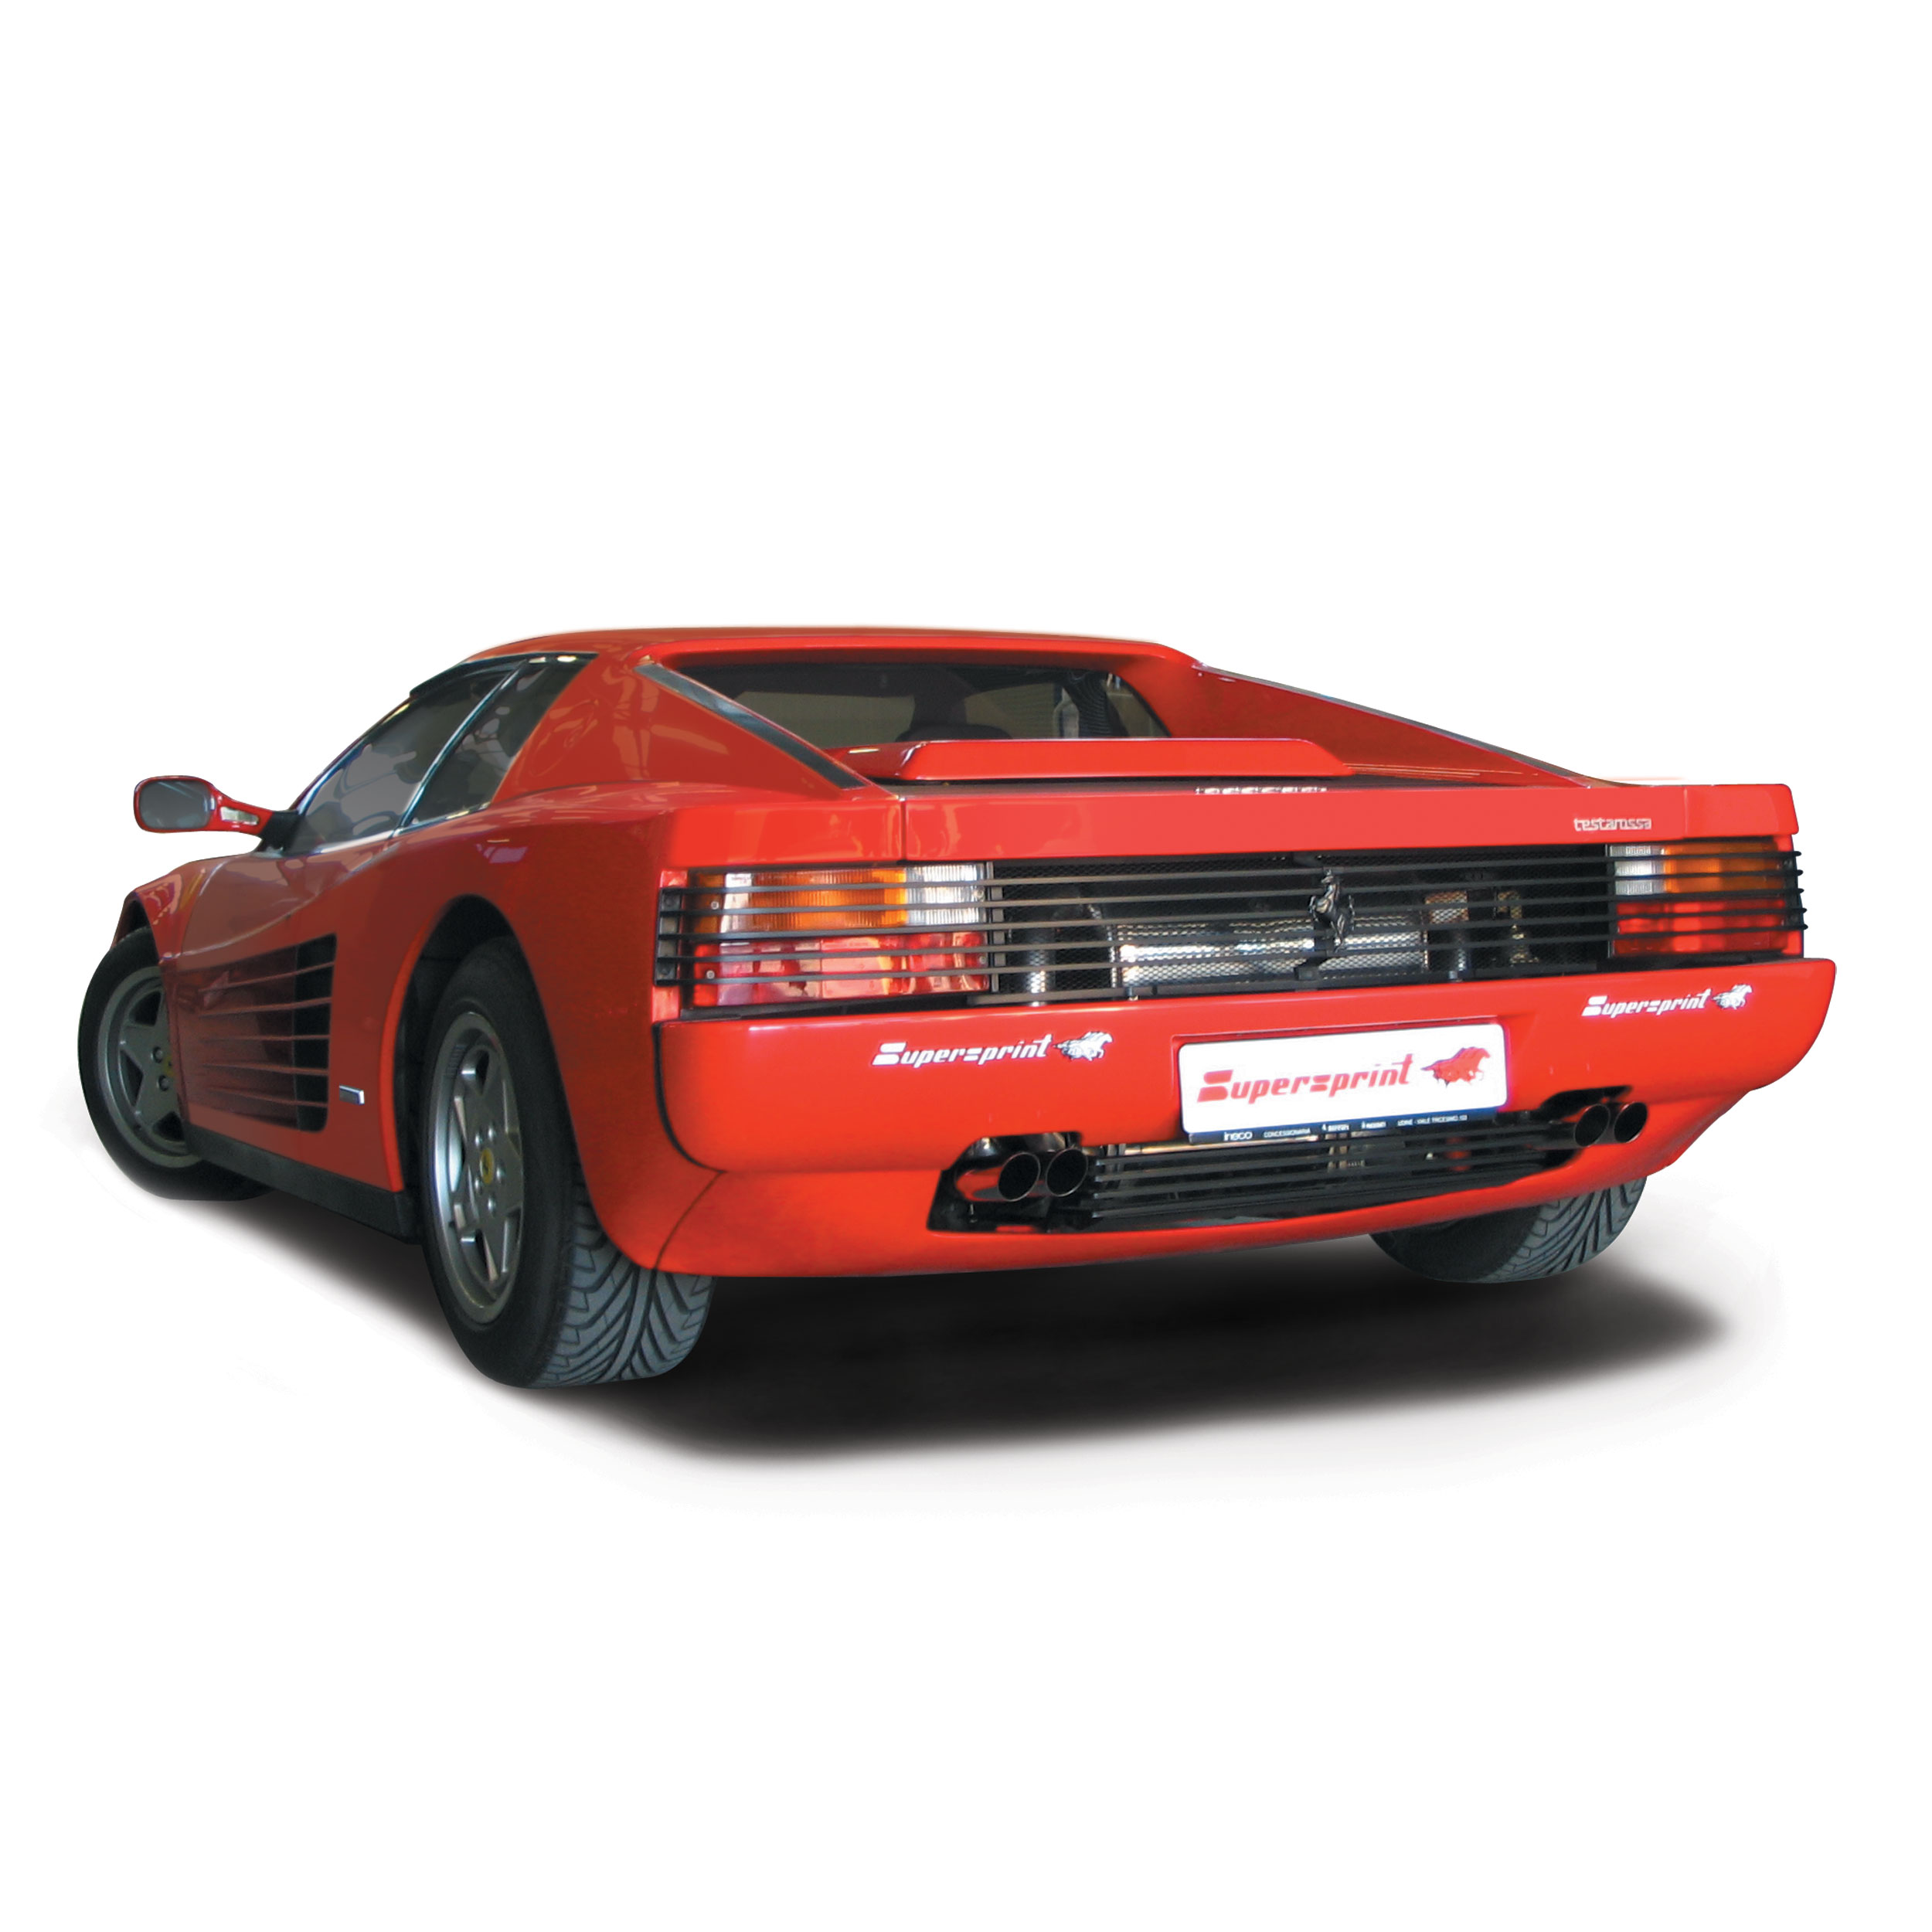 Performance Sport Exhaust For Ferrari Testarossa Ferrari